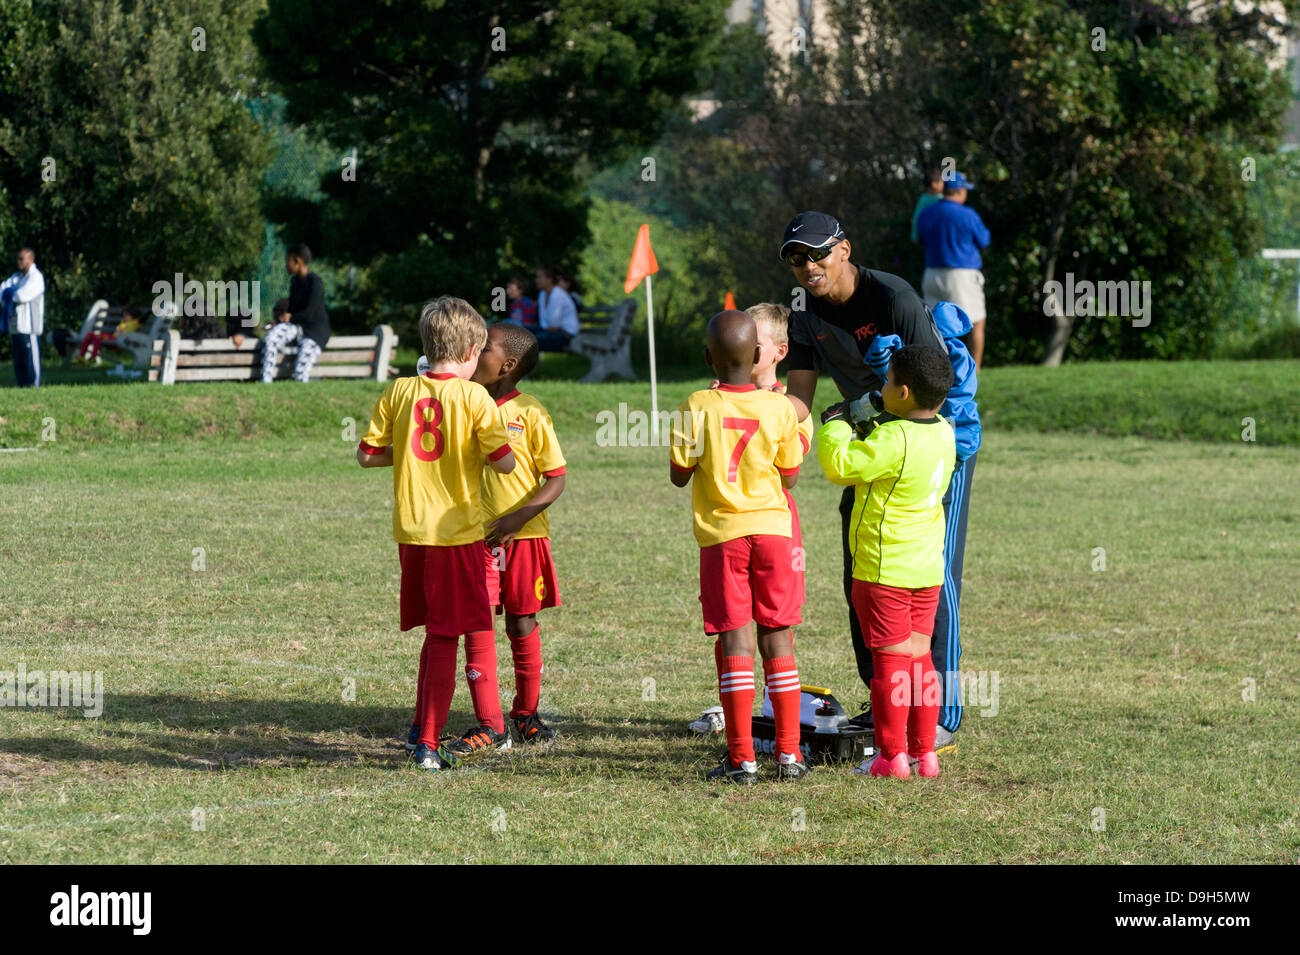 Coach instructs junior football player during half time break of a match, Cape Town, South Africa - Stock Image